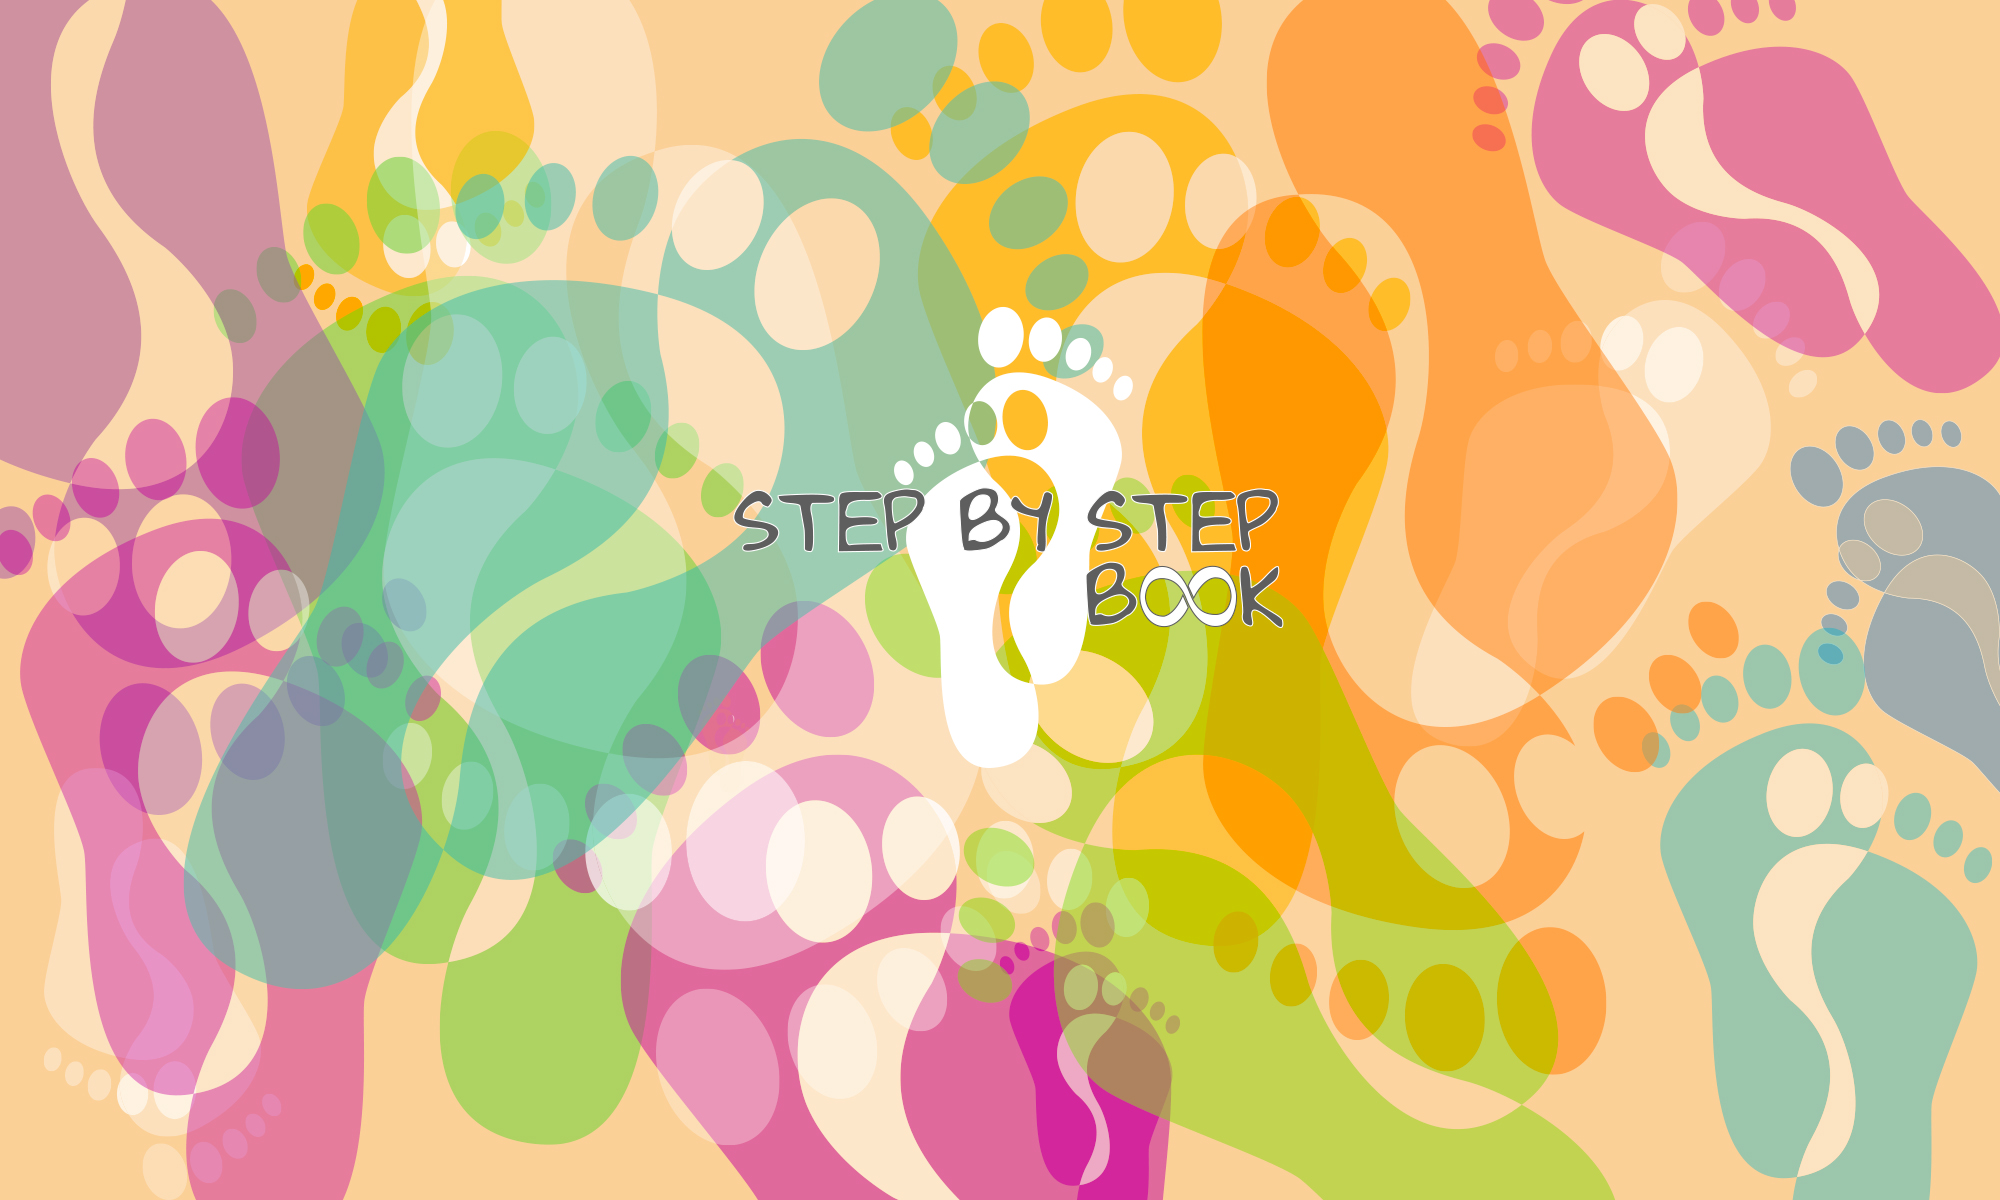 Step by Step BOOK